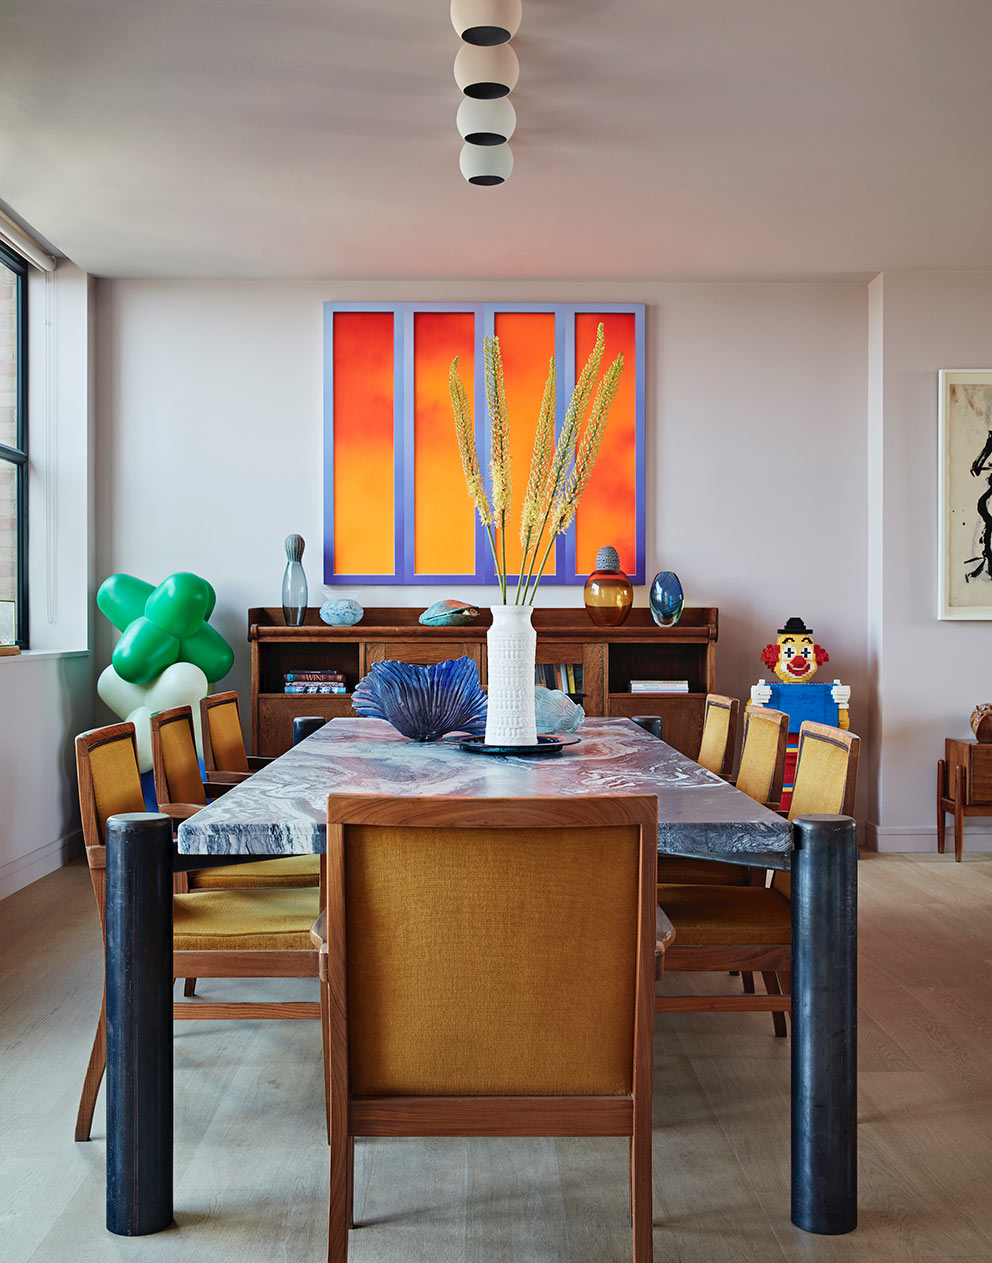 West London pied-a-terre quirky dining room